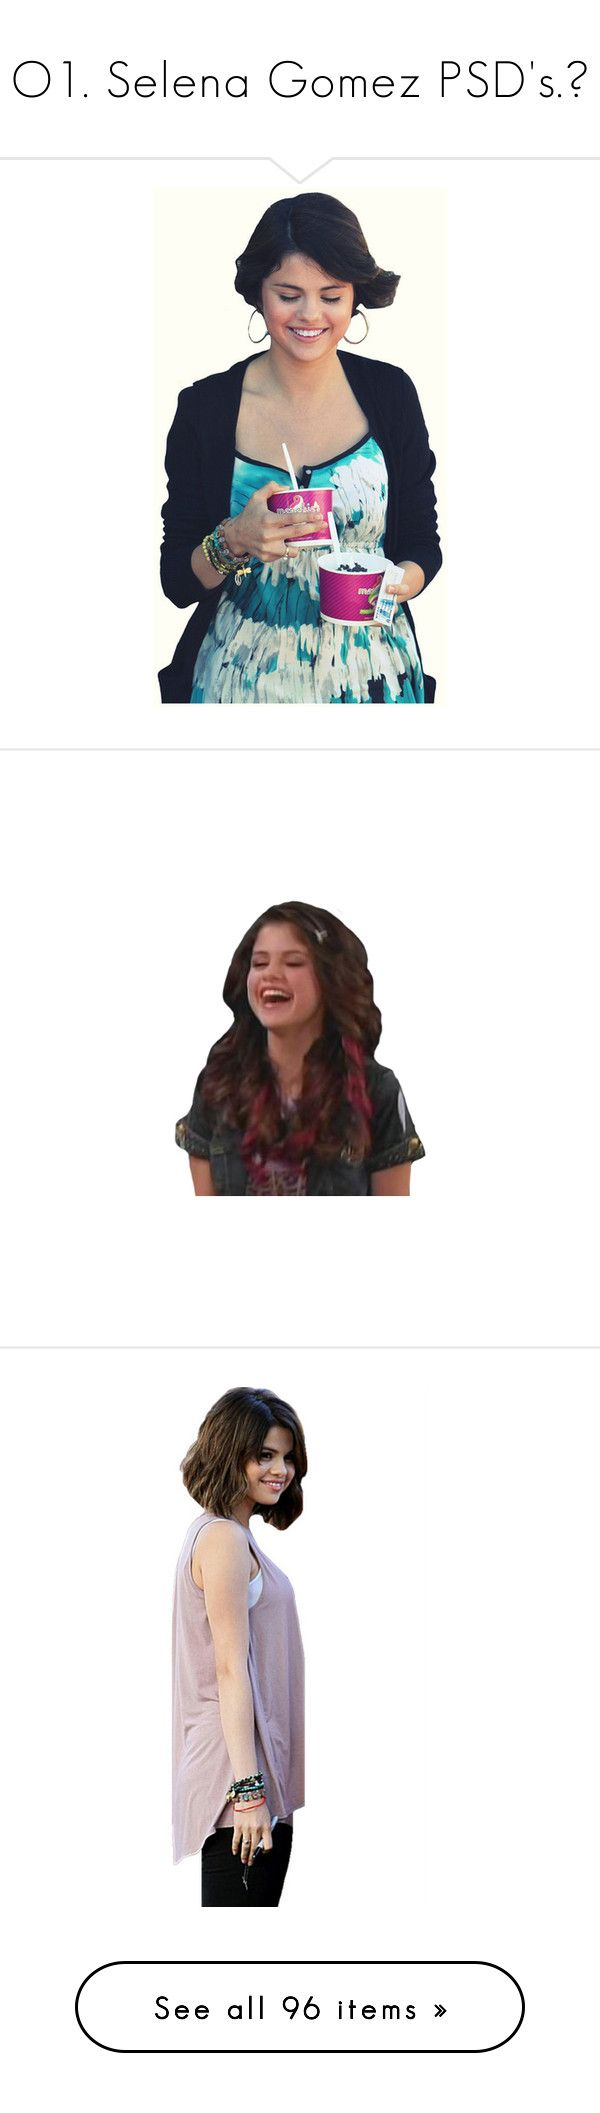 """O1. Selena Gomez PSD's.♥"" by natalialovesyou ❤ liked on Polyvore featuring selena gomez, celebs, pictures, cut outs, selena, celebrities, people, miley cyrus, backgrounds and pics"